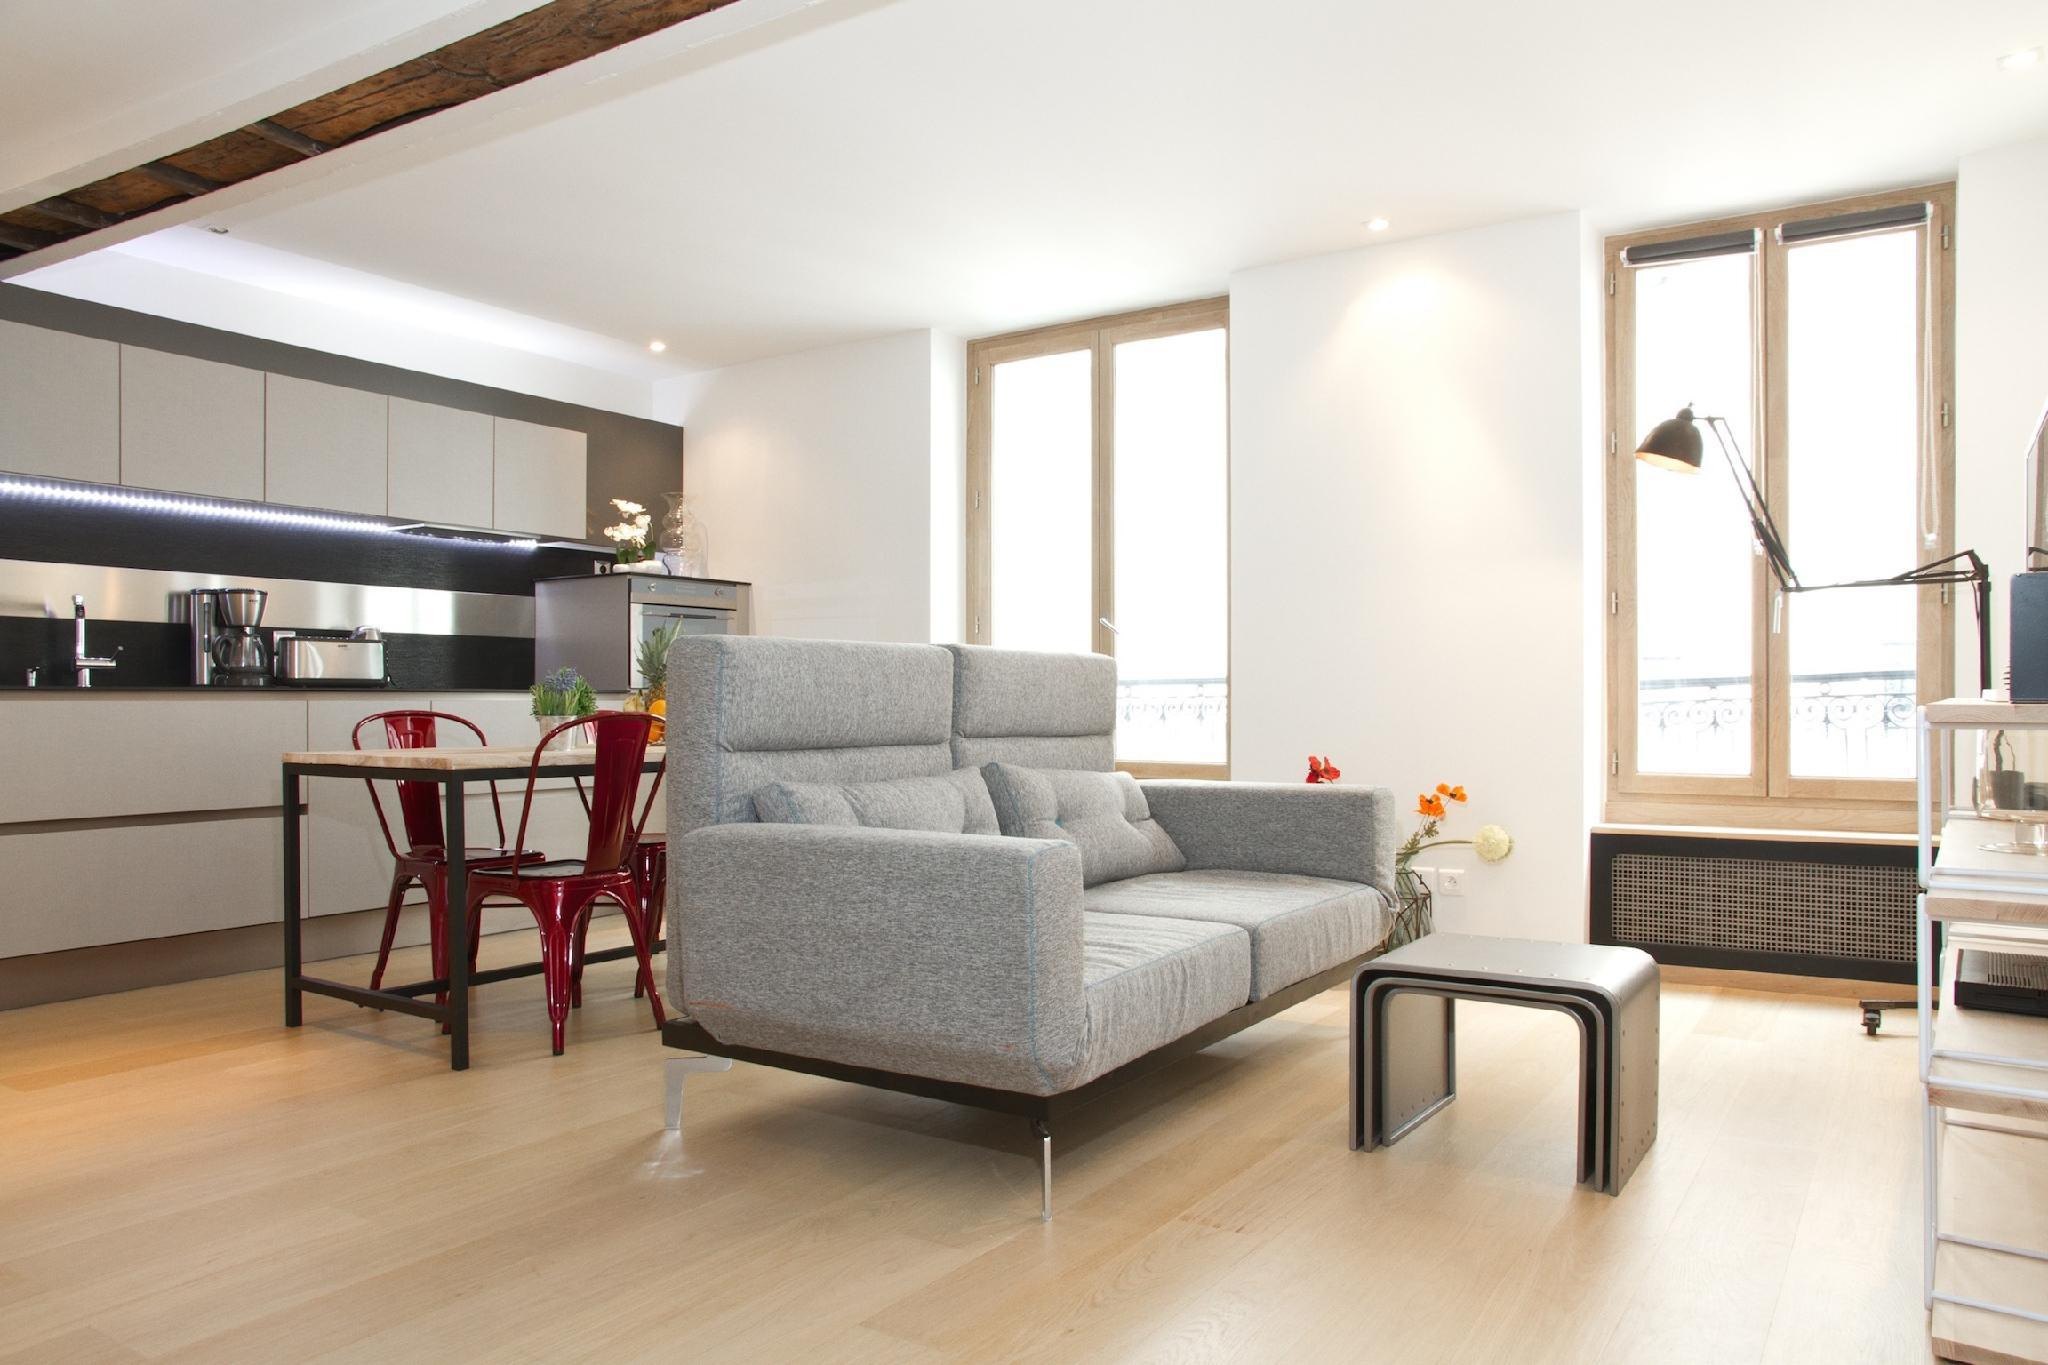 IN THE HEART OF ST.GERMAIN- STYLISH LEFT BANK FLAT